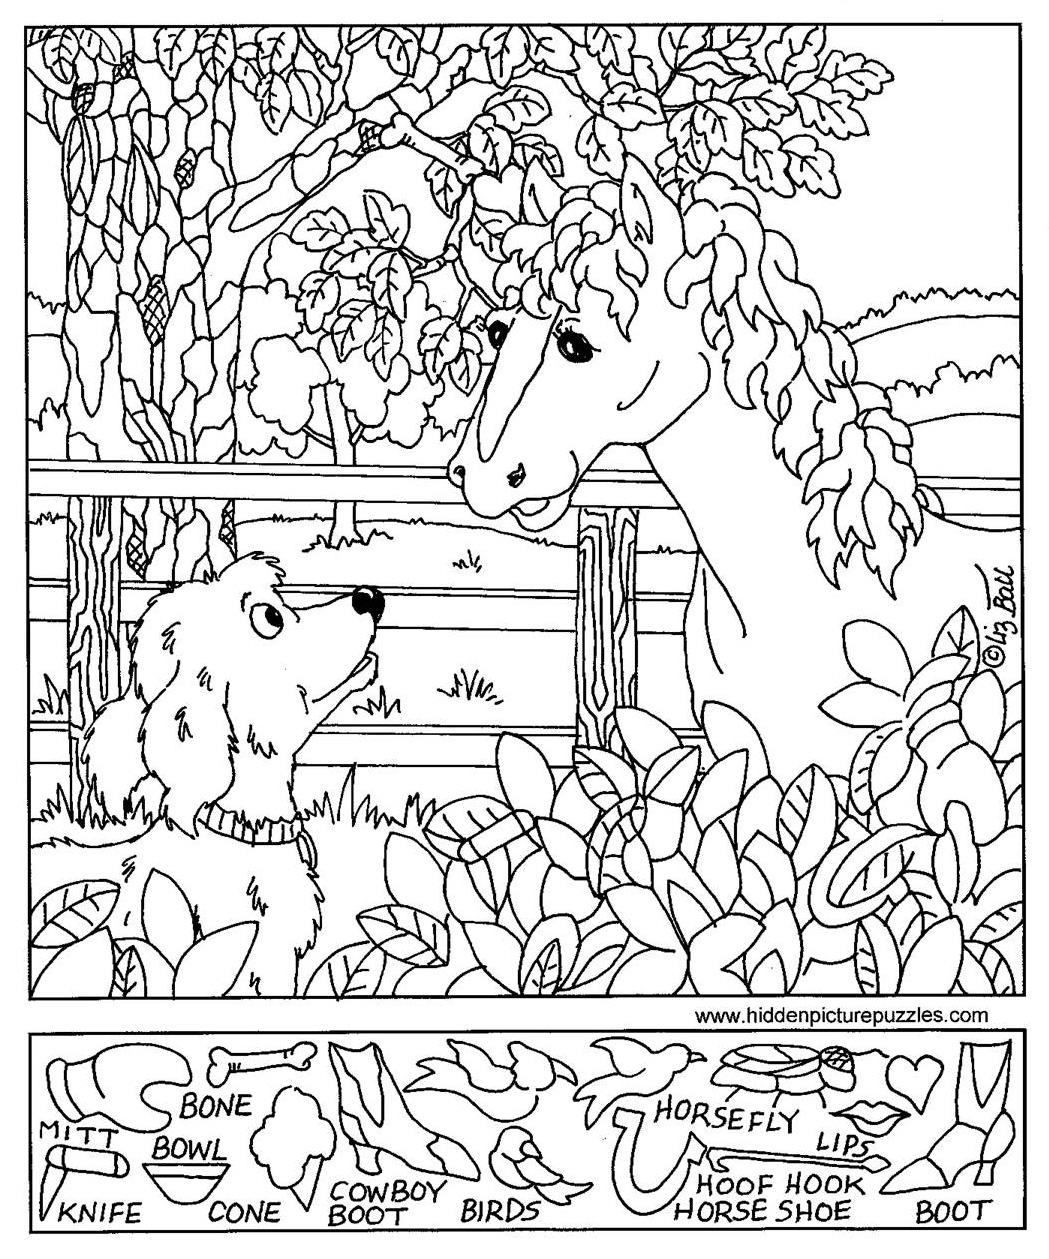 Objects Coloring Pages At Getdrawings Com Free For